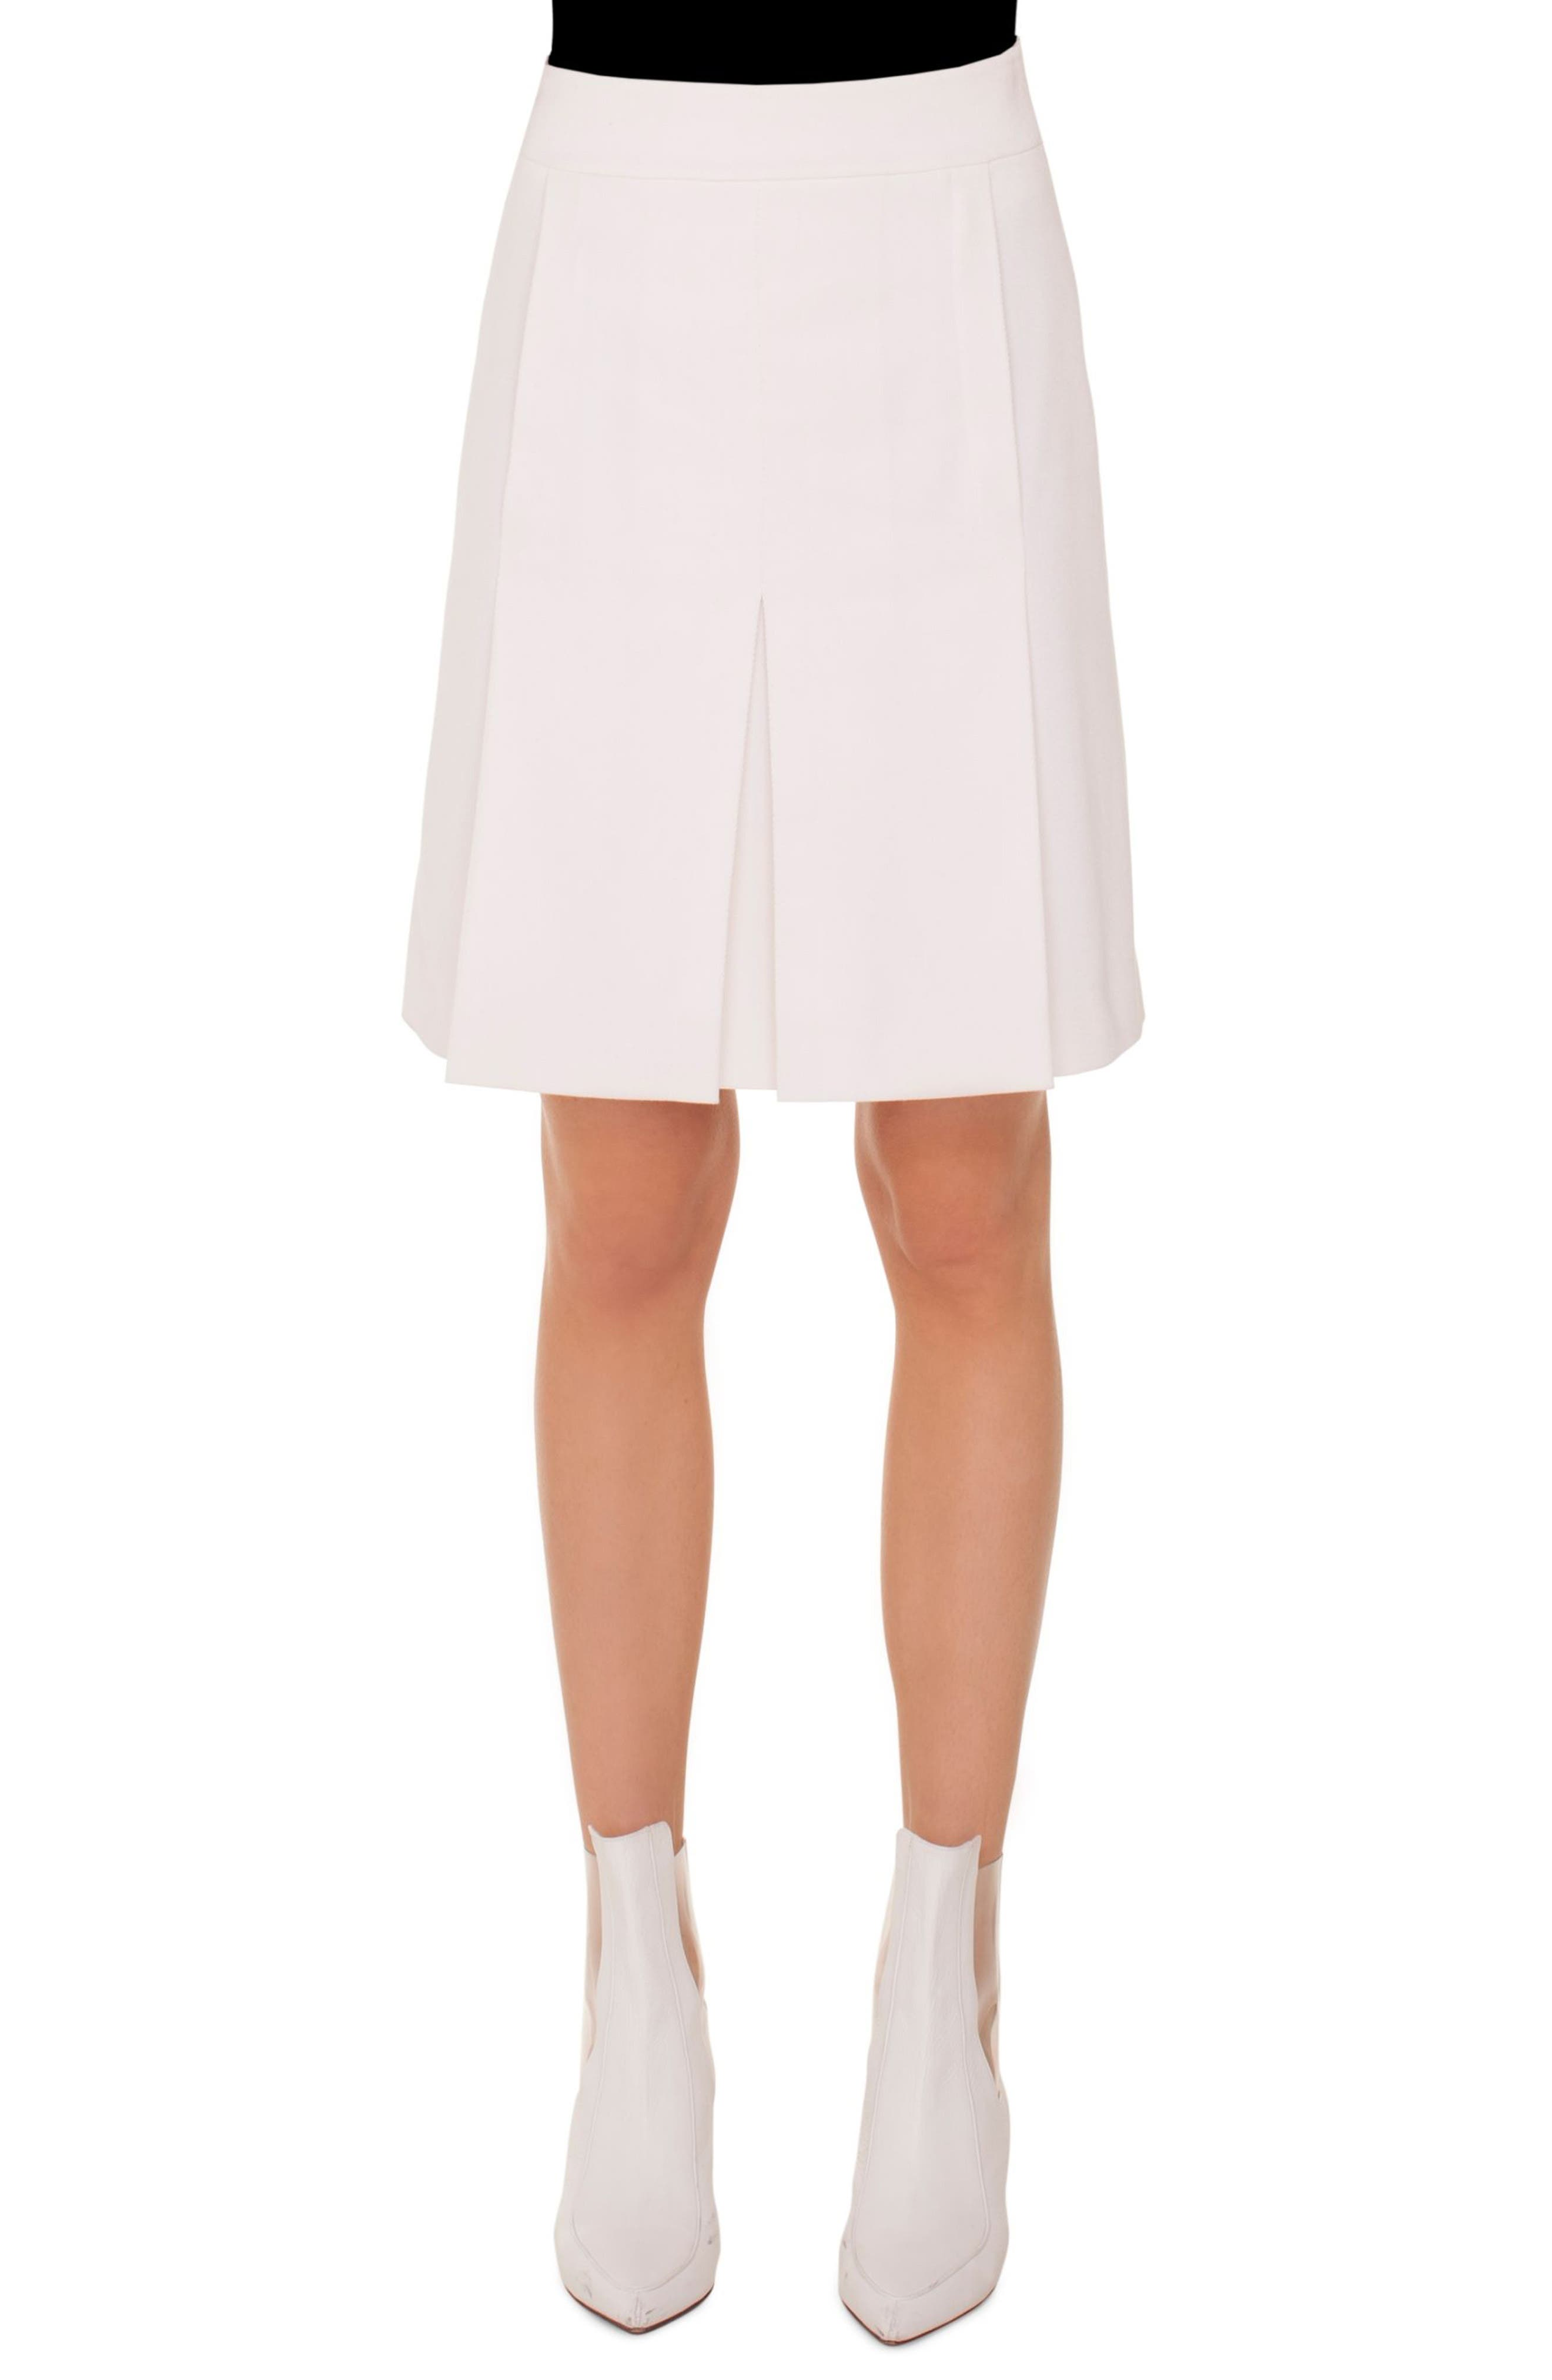 A-Line Tricot Skirt With Side-Seam Pockets in Cream